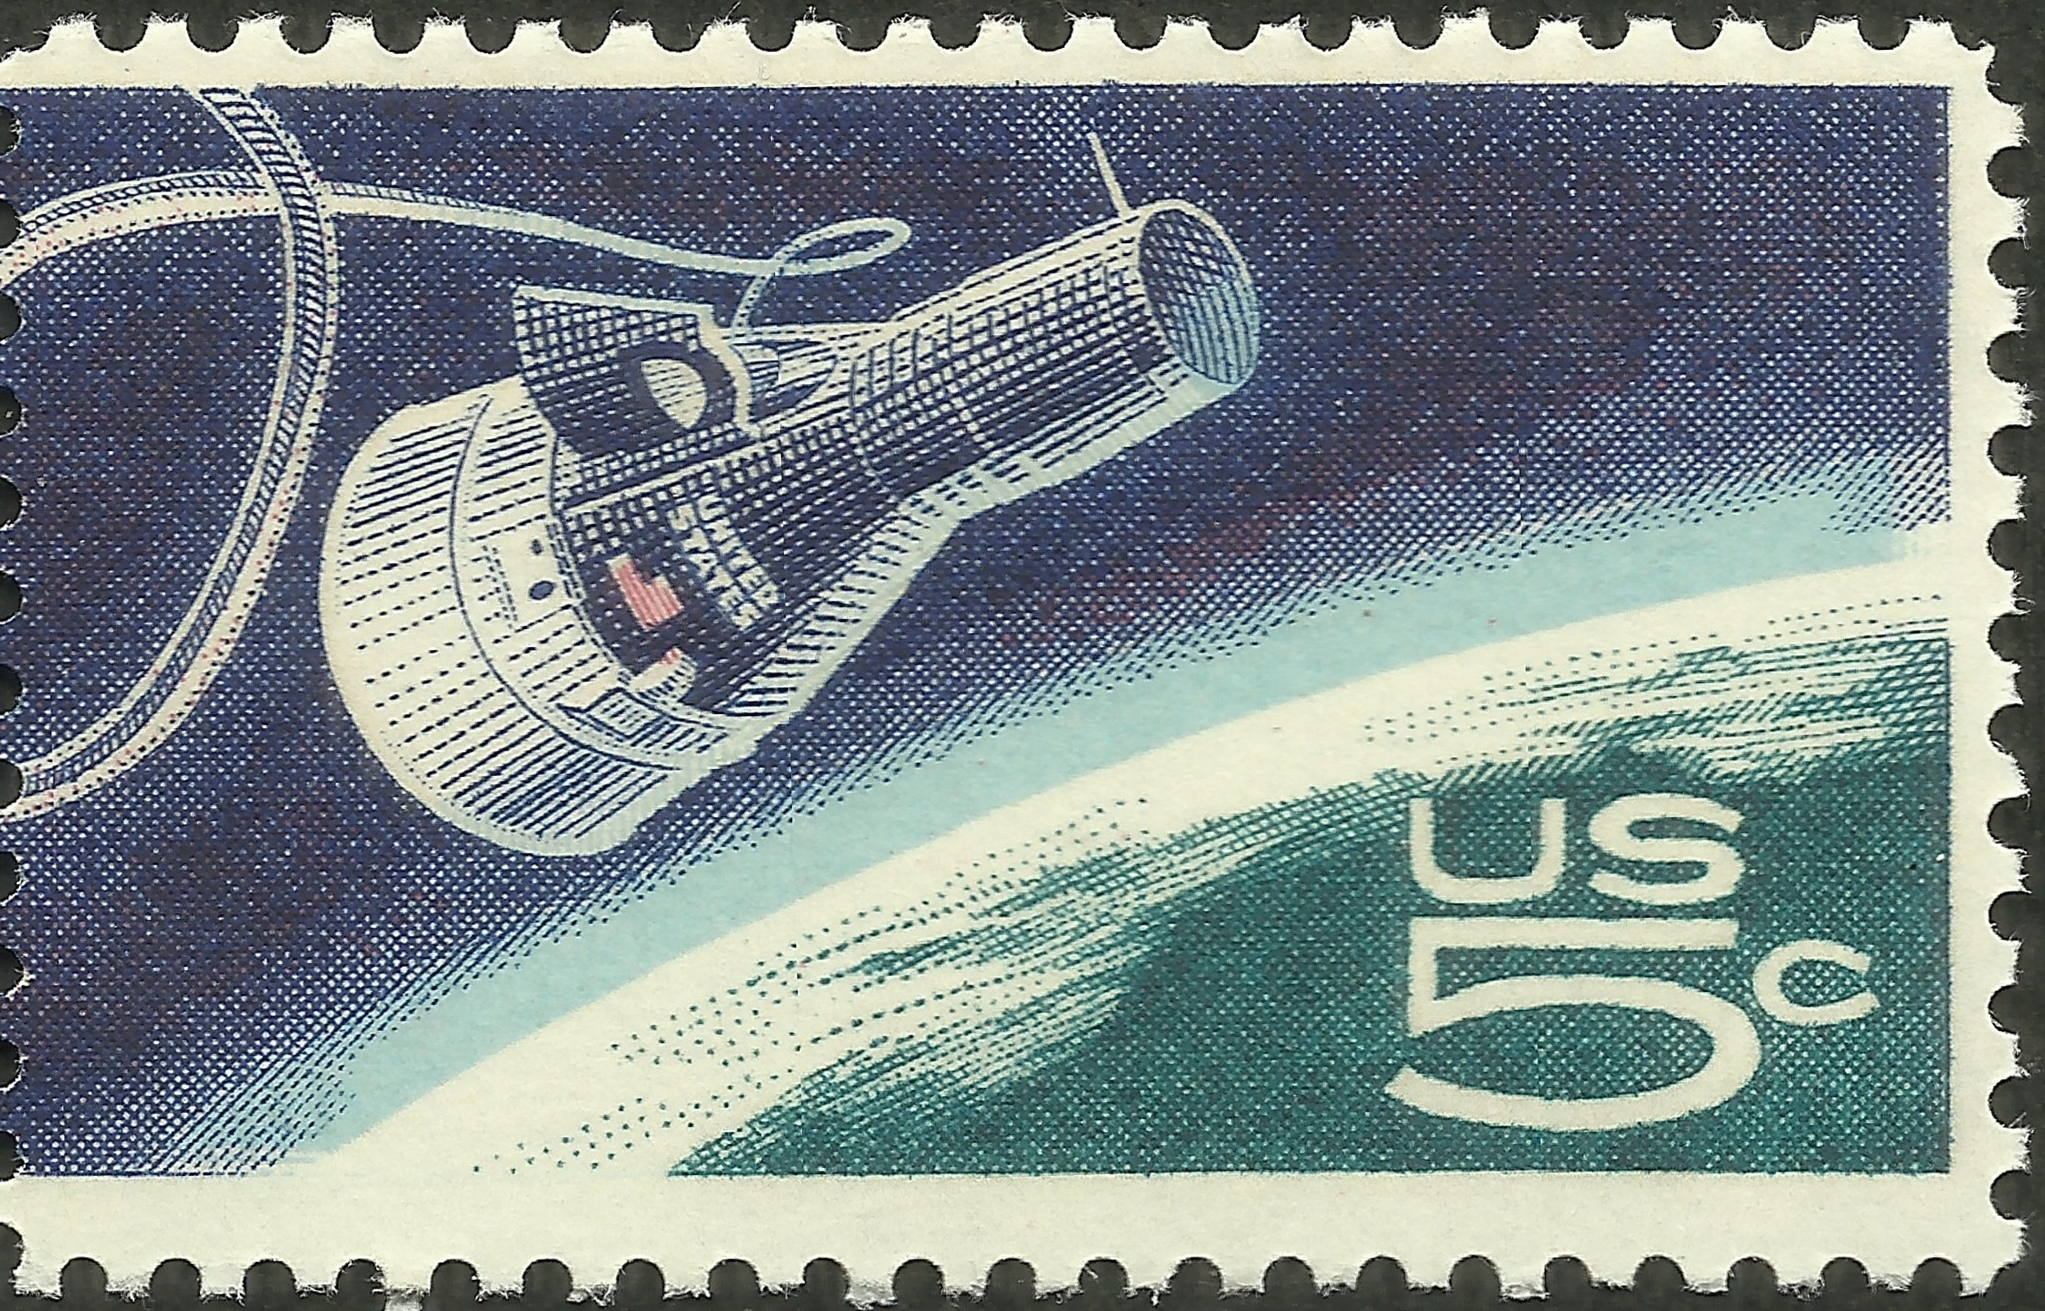 Gemini 10 Space Mission